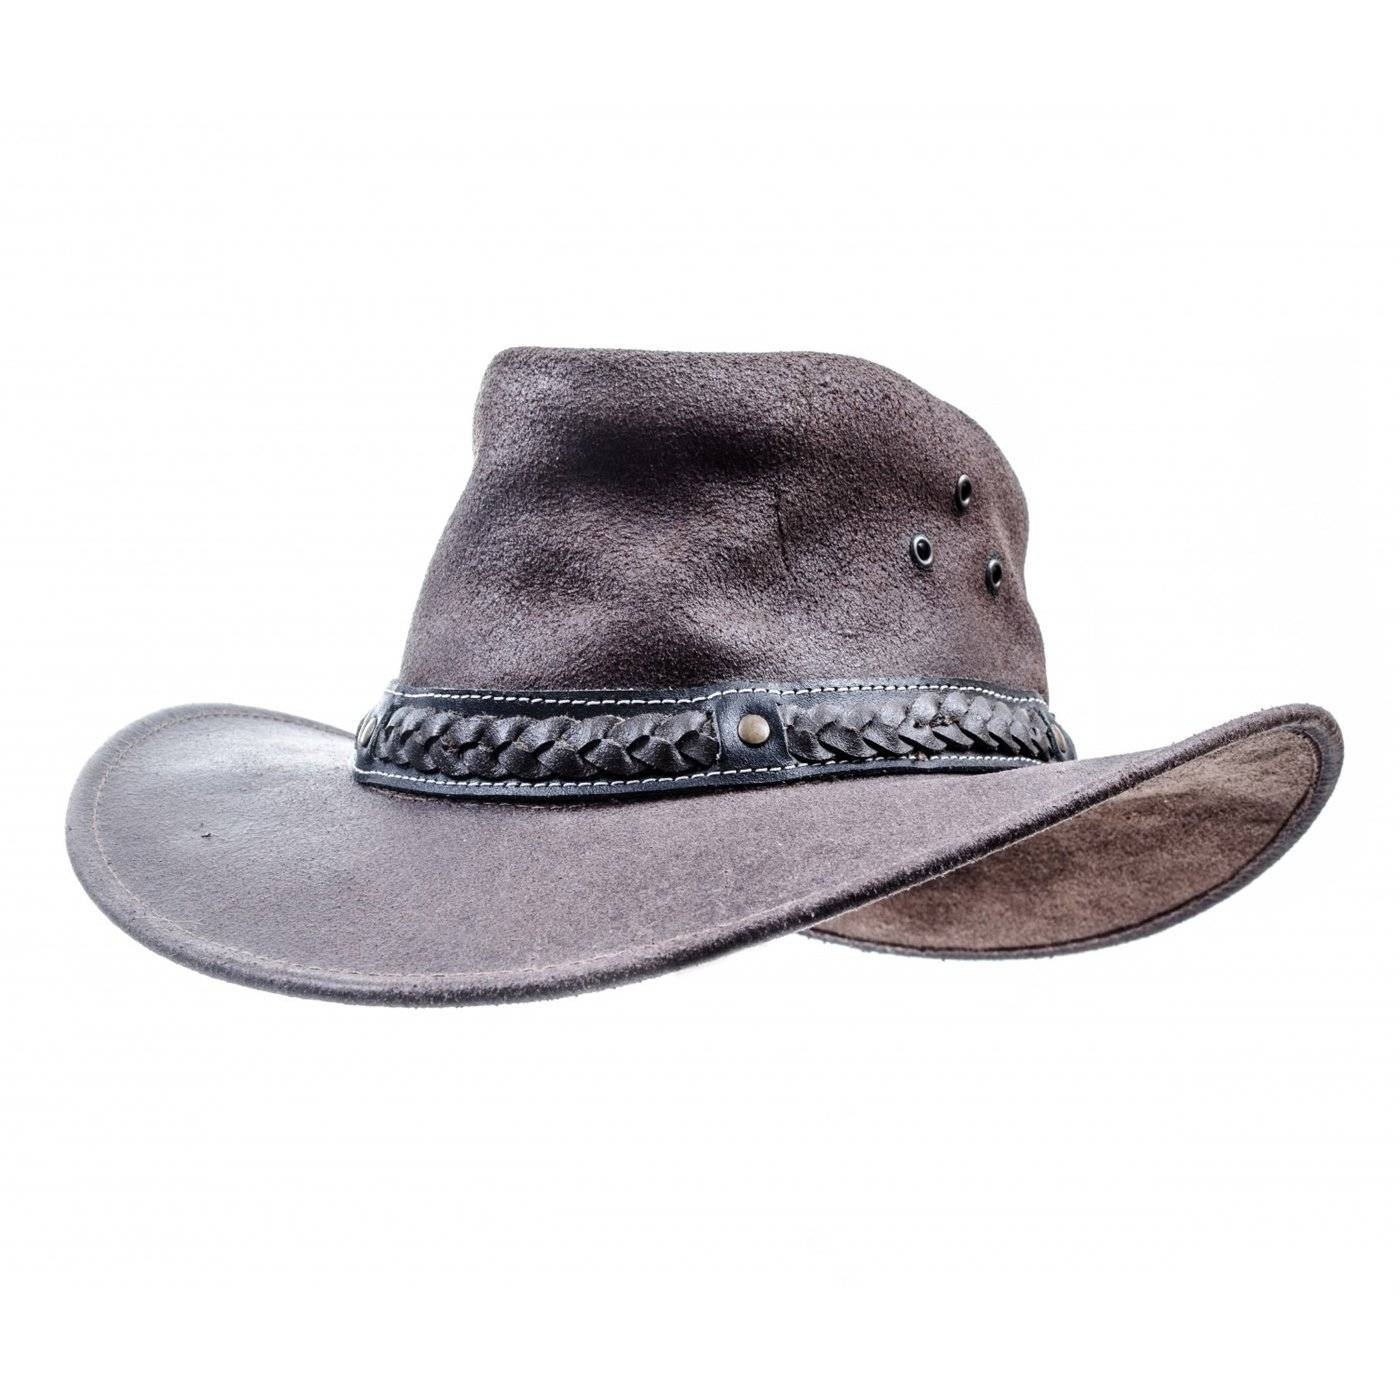 Dark Cowboy Hat Five Star Equestrian